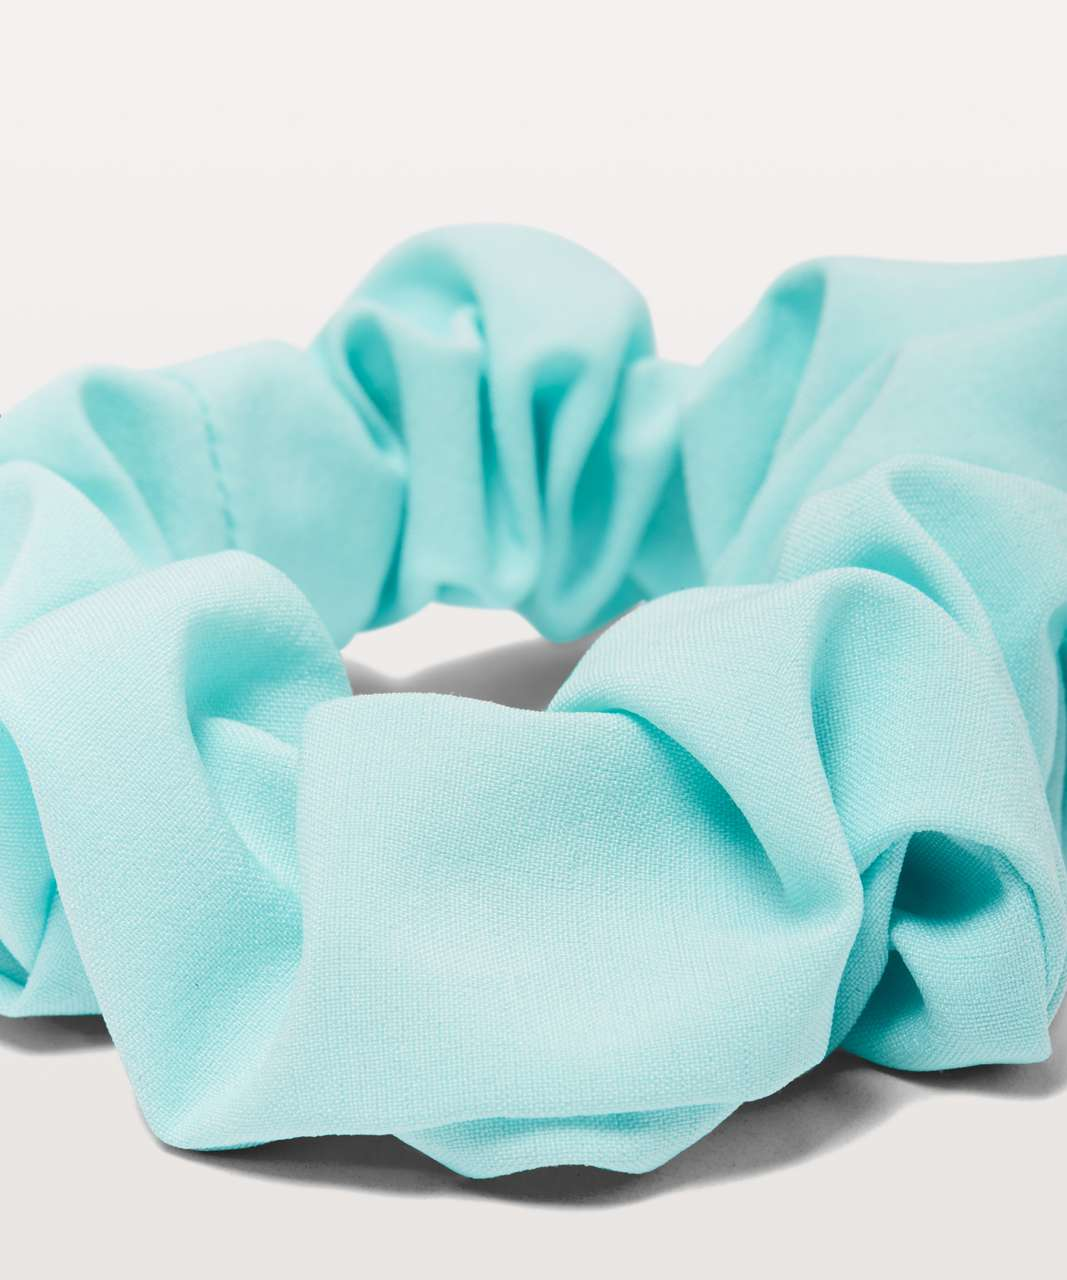 Lululemon Uplifting Scrunchie - Aquamarine (First Release)